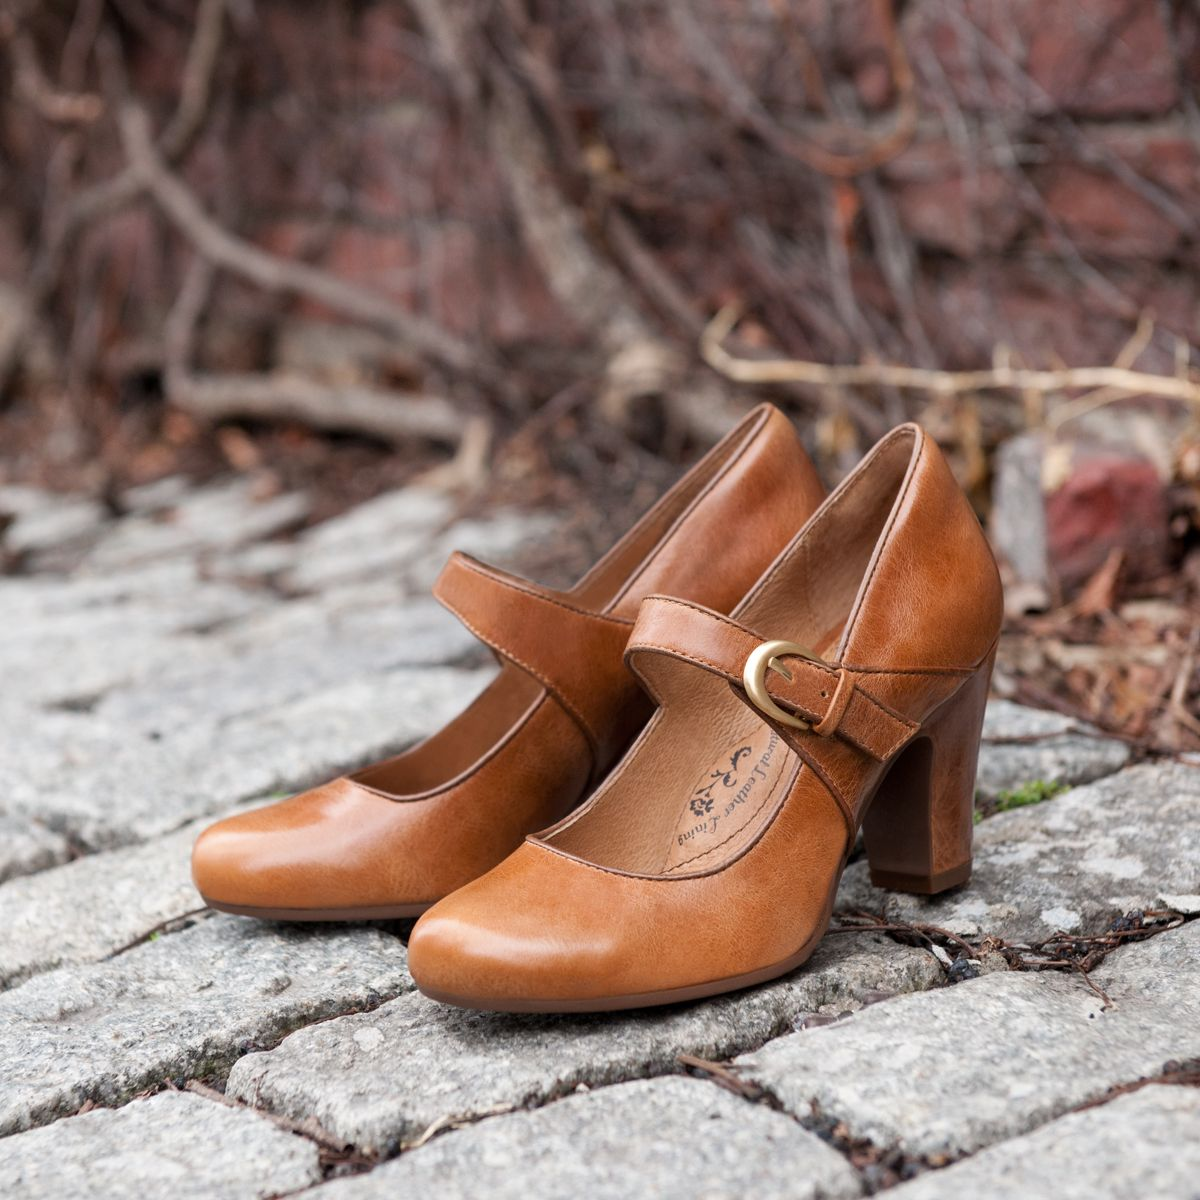 A comfortable work style with a trendy chunky heel that will keep your feet happy all day. Love the retro vibe. The MIRANDA by Sofft.